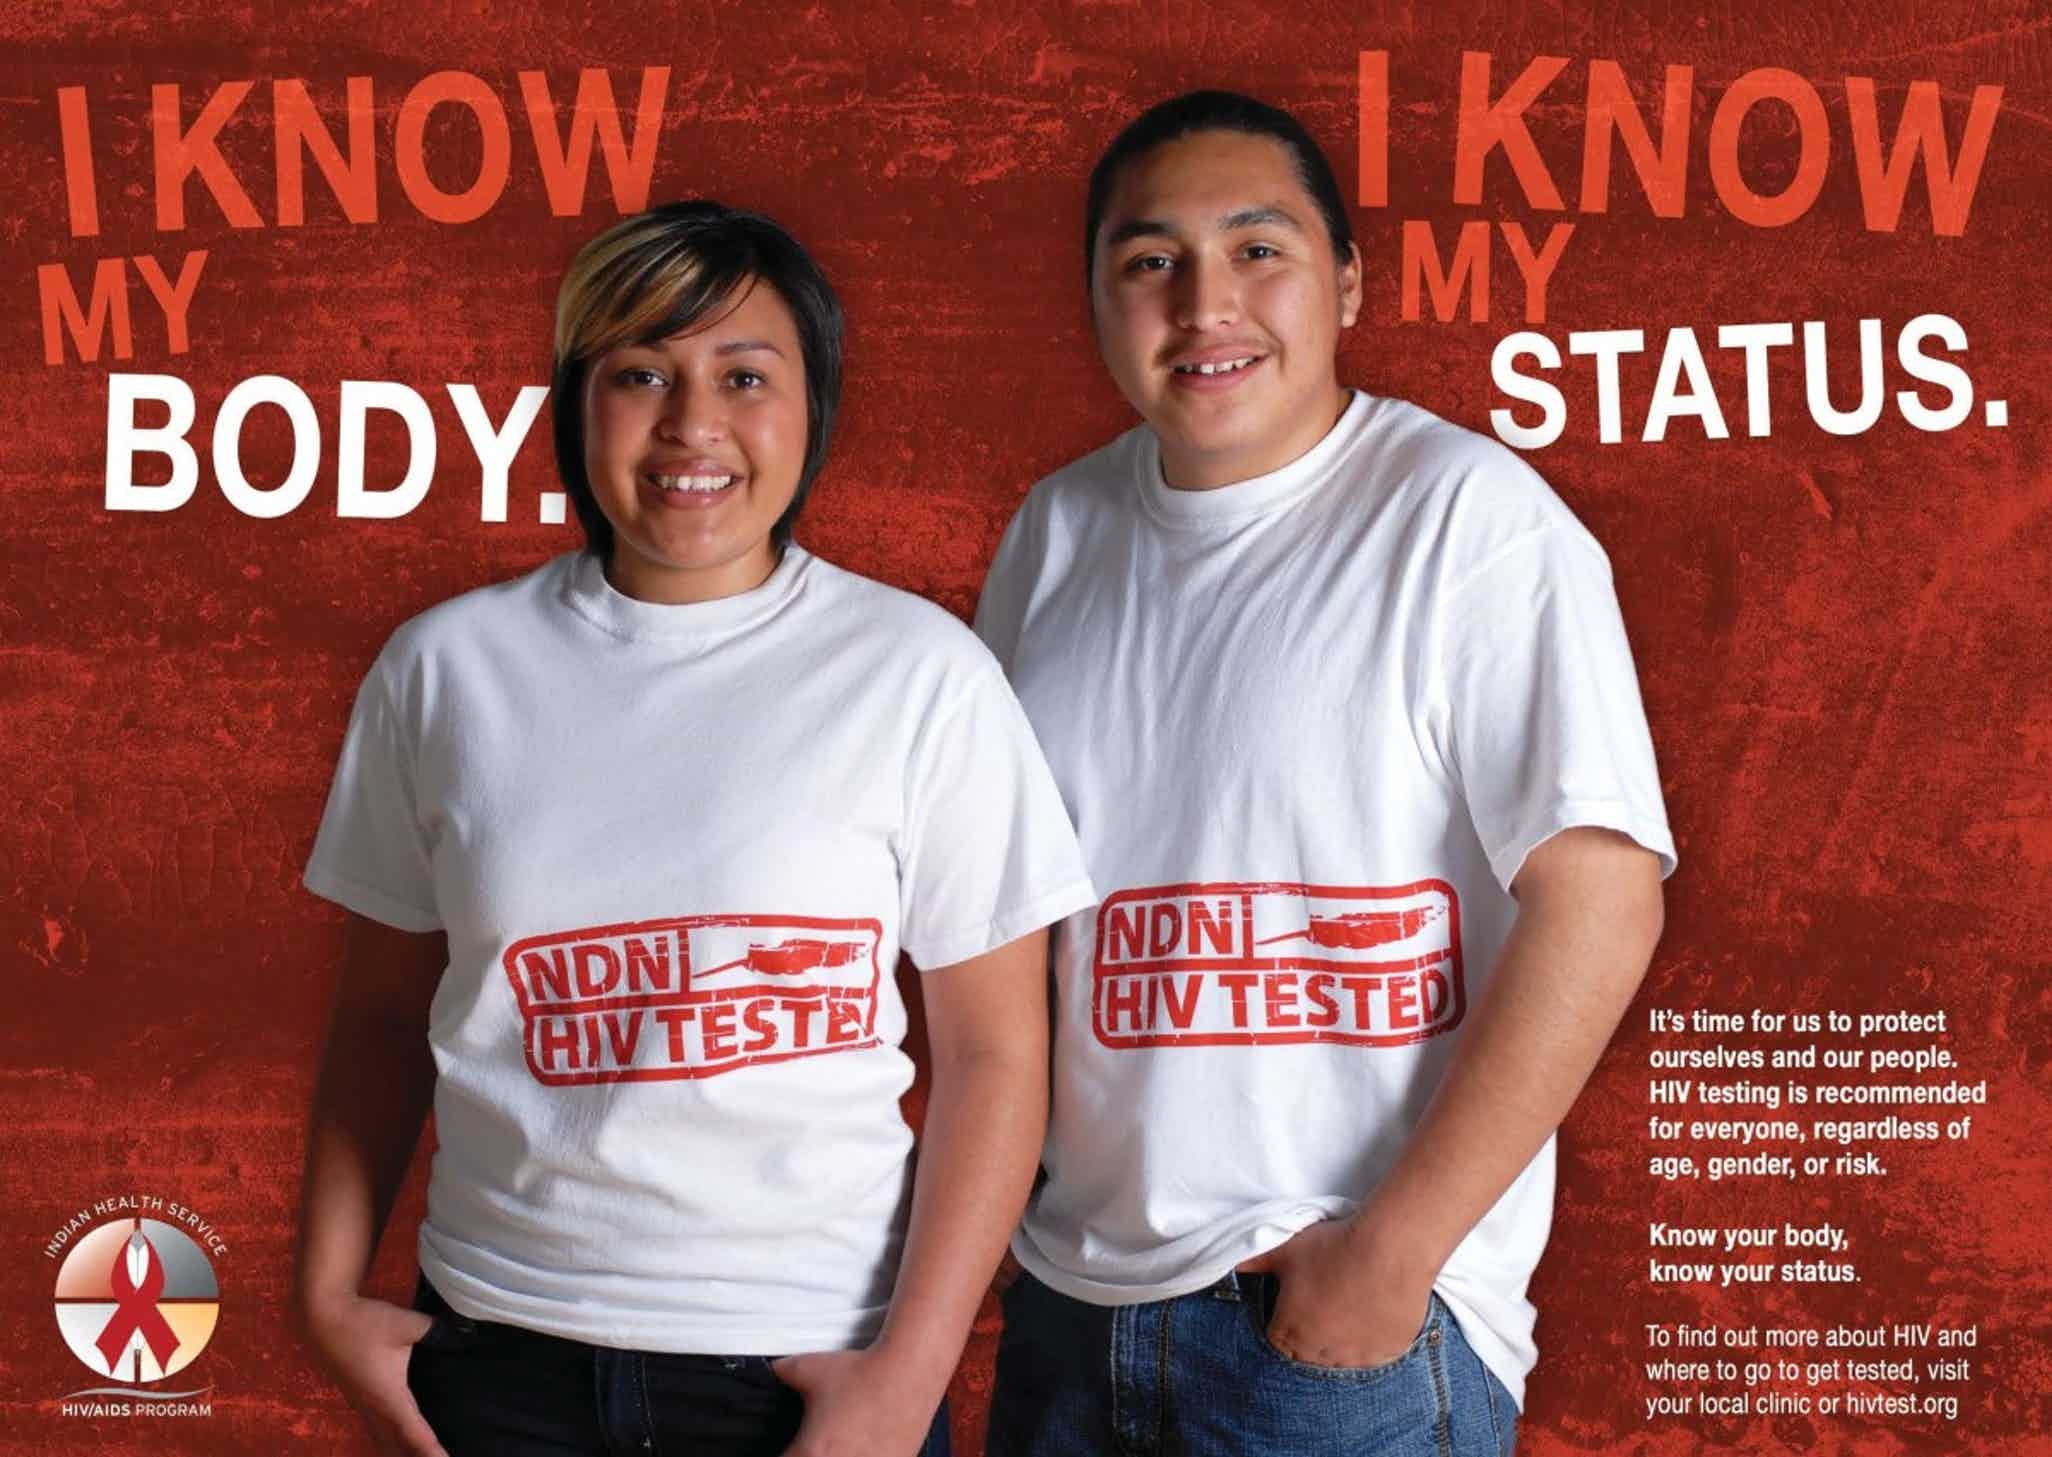 lutheran indian ministries native news - AIDS Teen Poster - Indian Health Service.jp